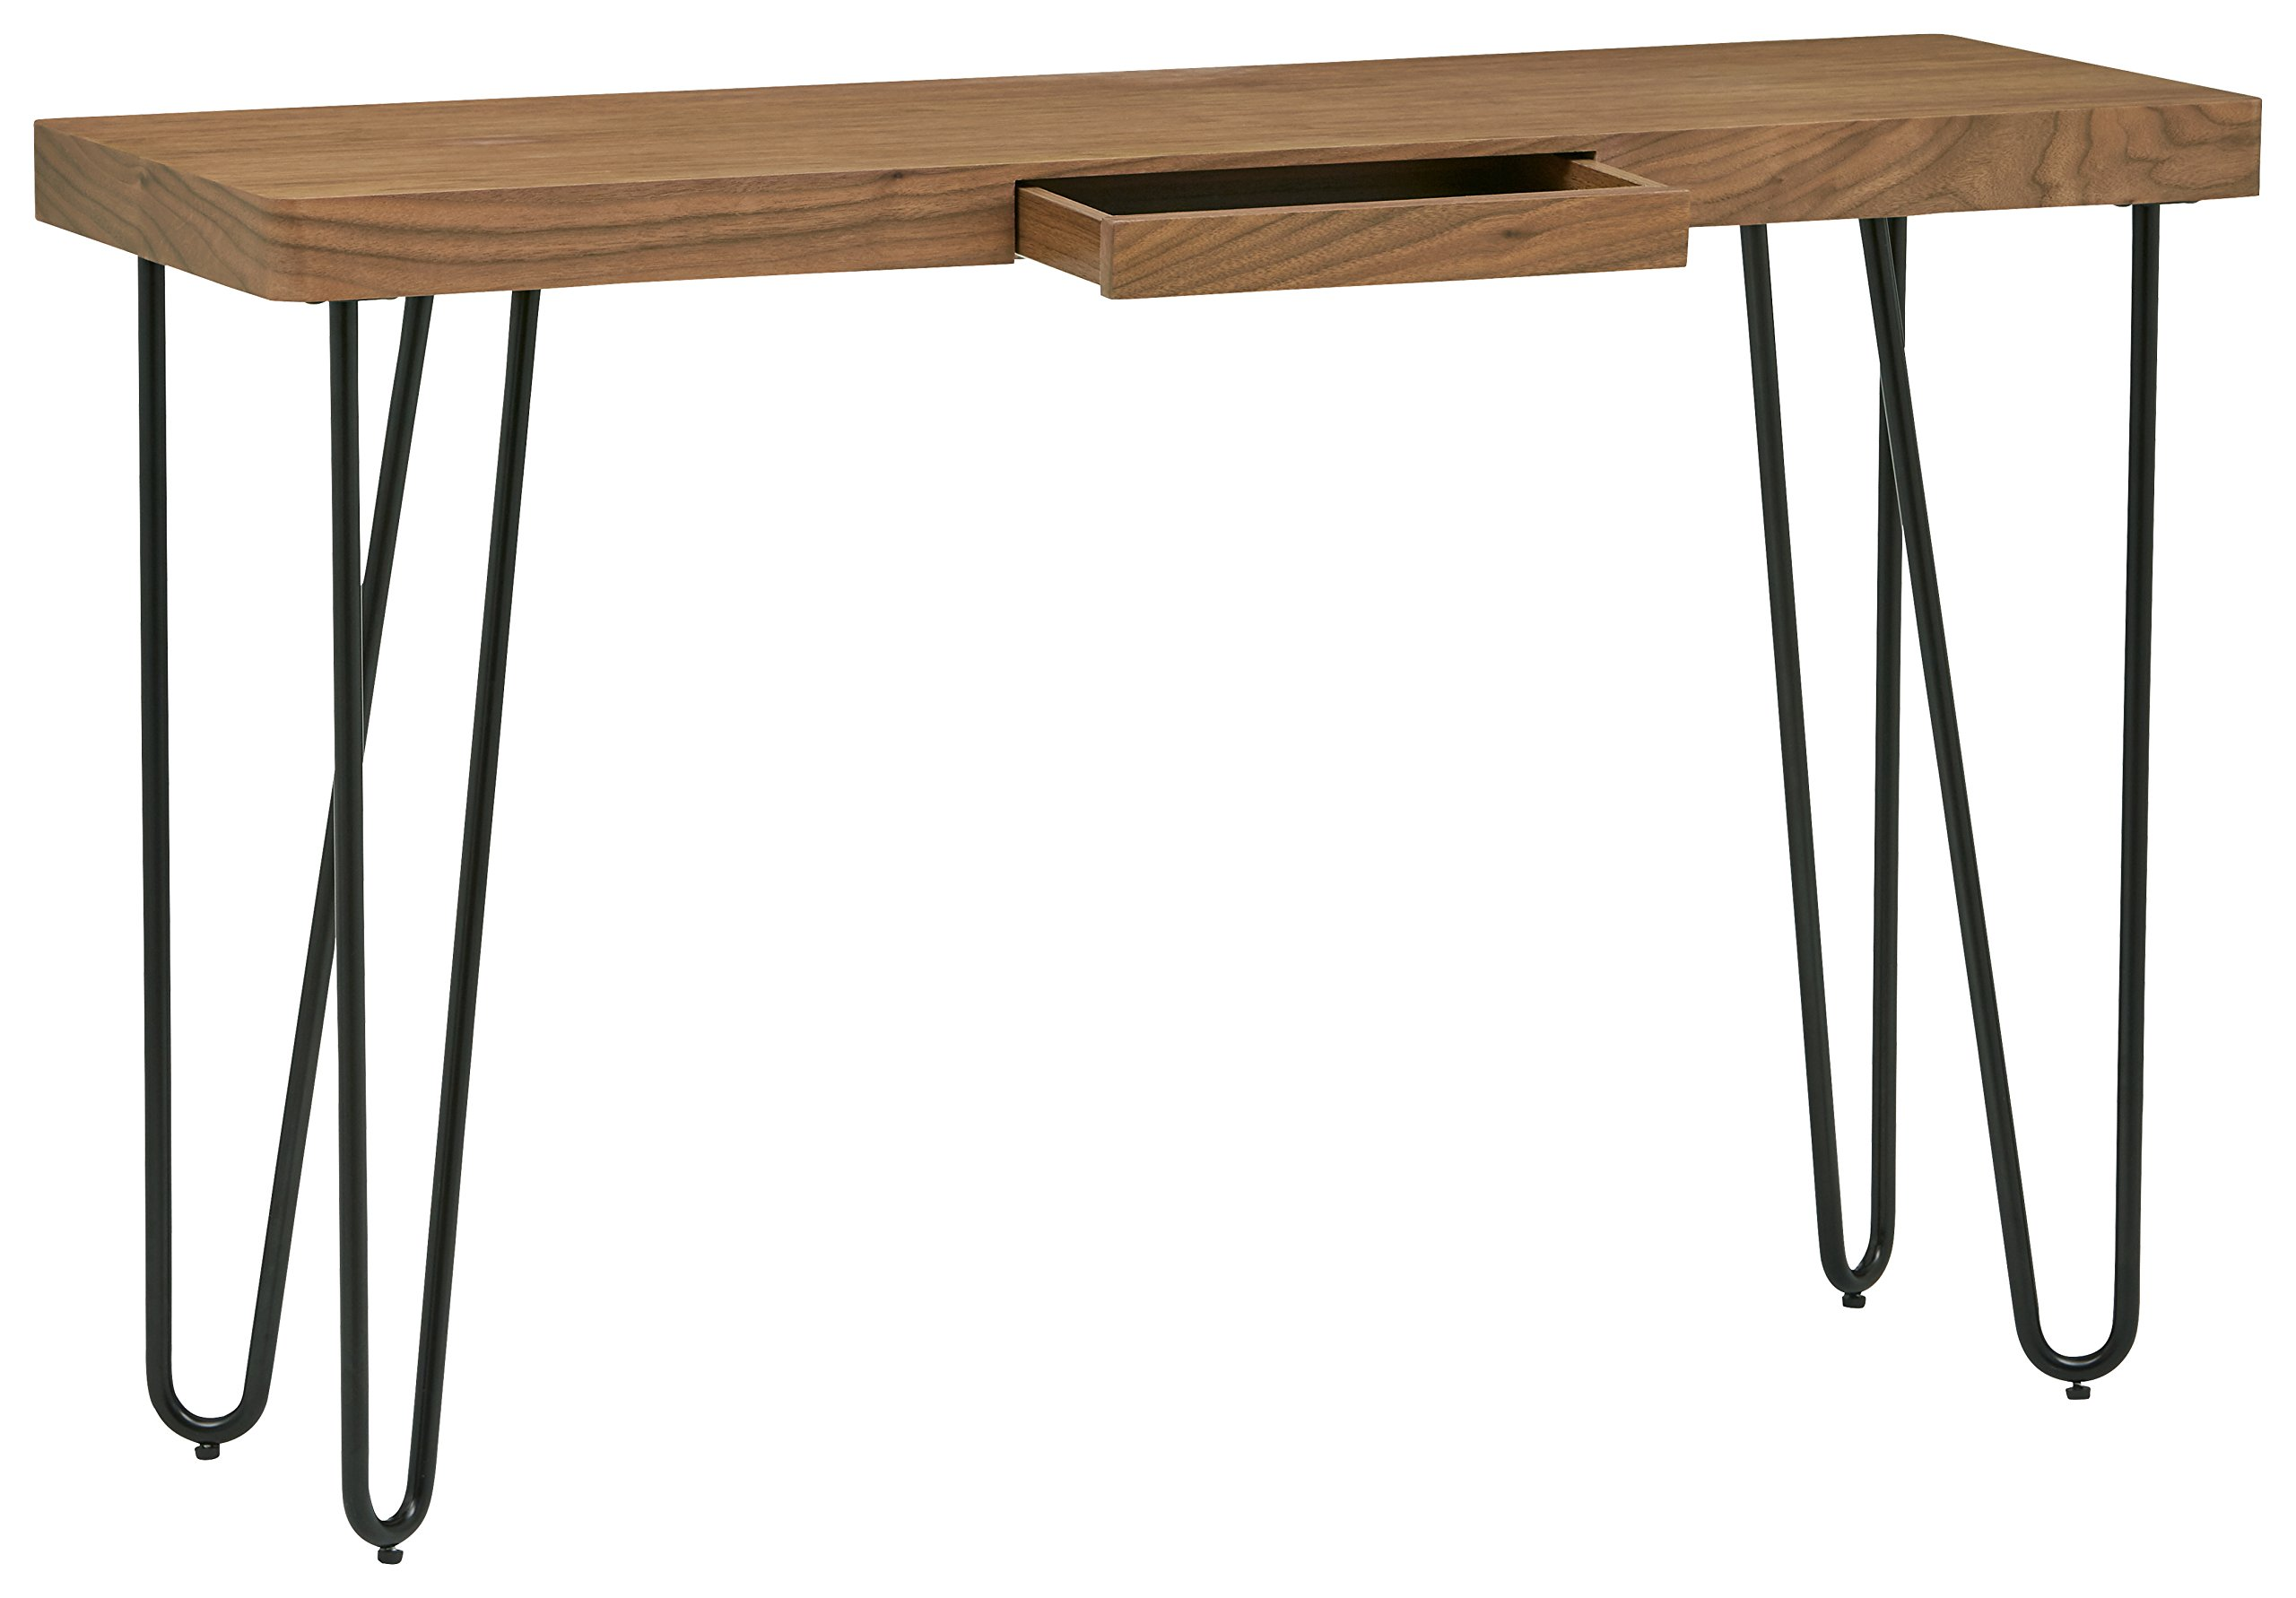 Rivet Hairpin Wood and Metal Tall 29.5'' Console Table, Walnut and Black by Rivet (Image #3)